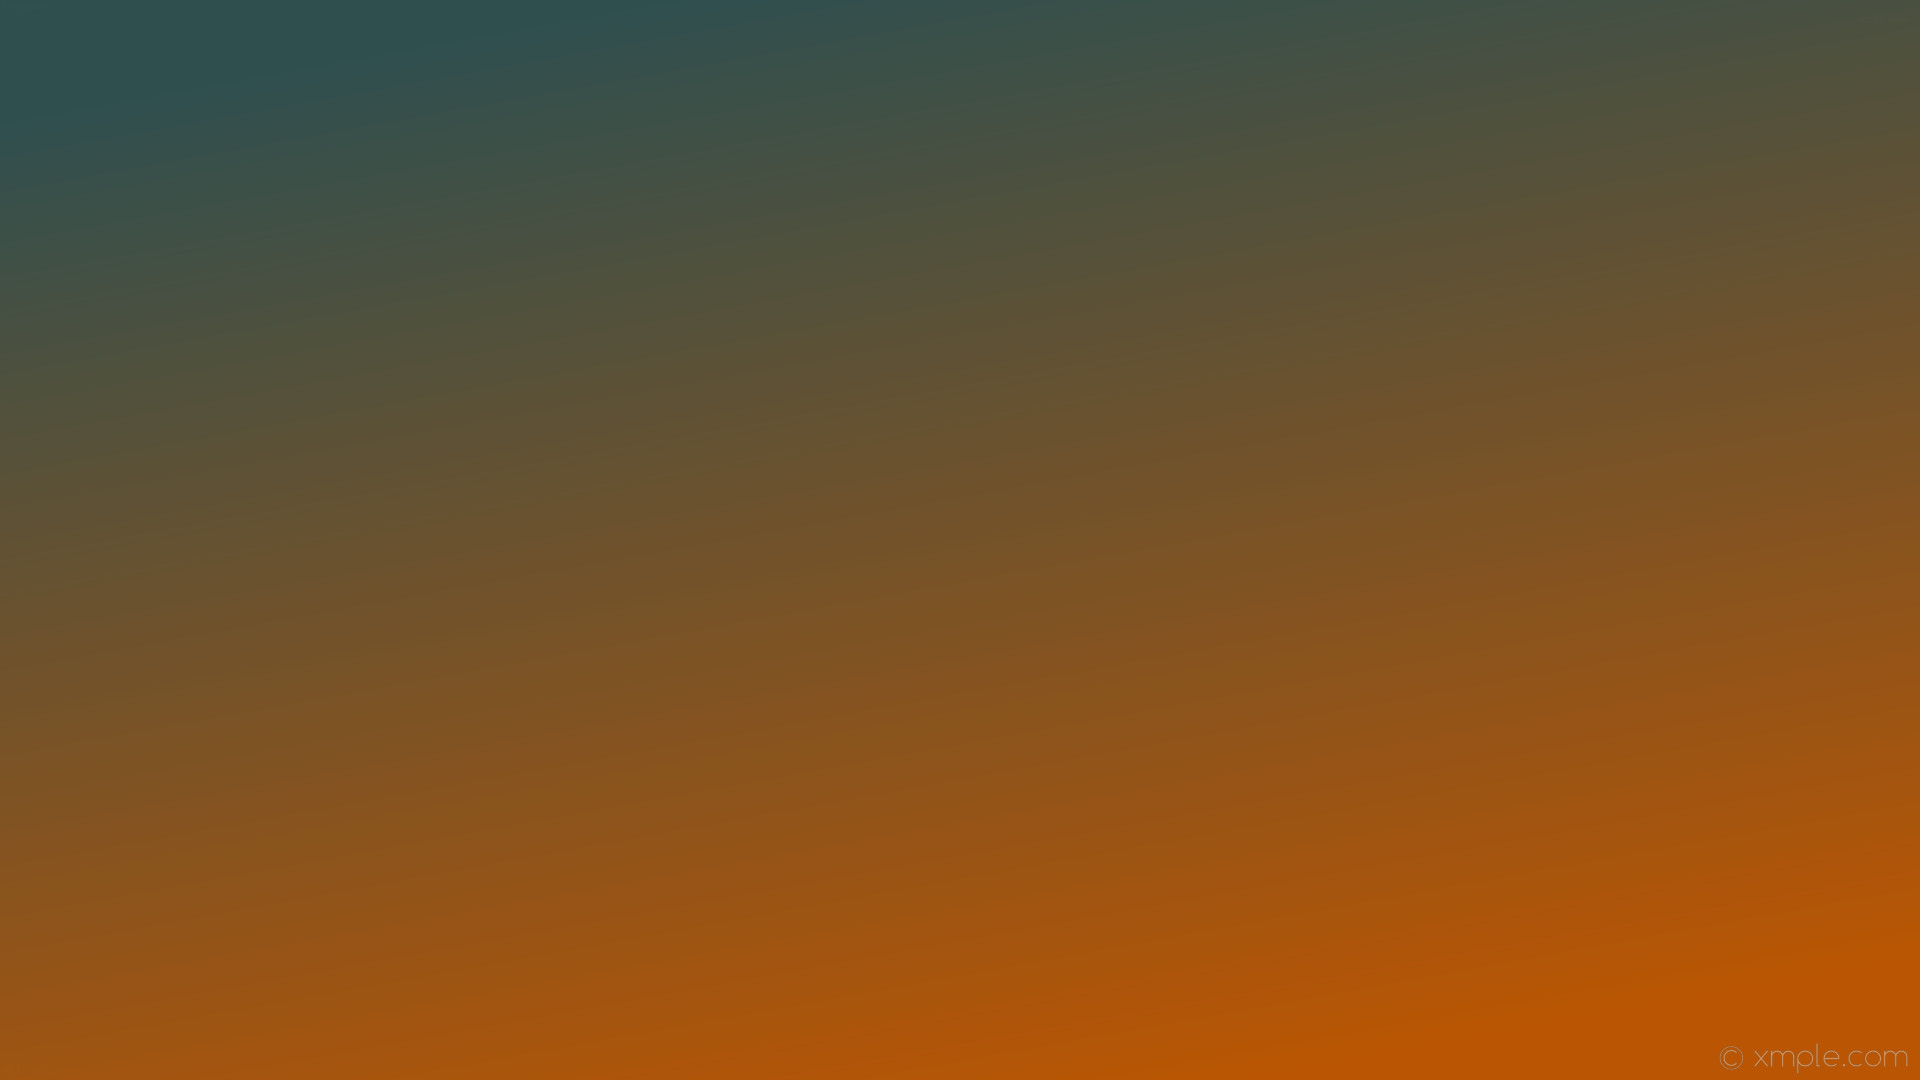 wallpaper orange grey gradient linear dark slate gray #ba5603 #2f4f4f 300°